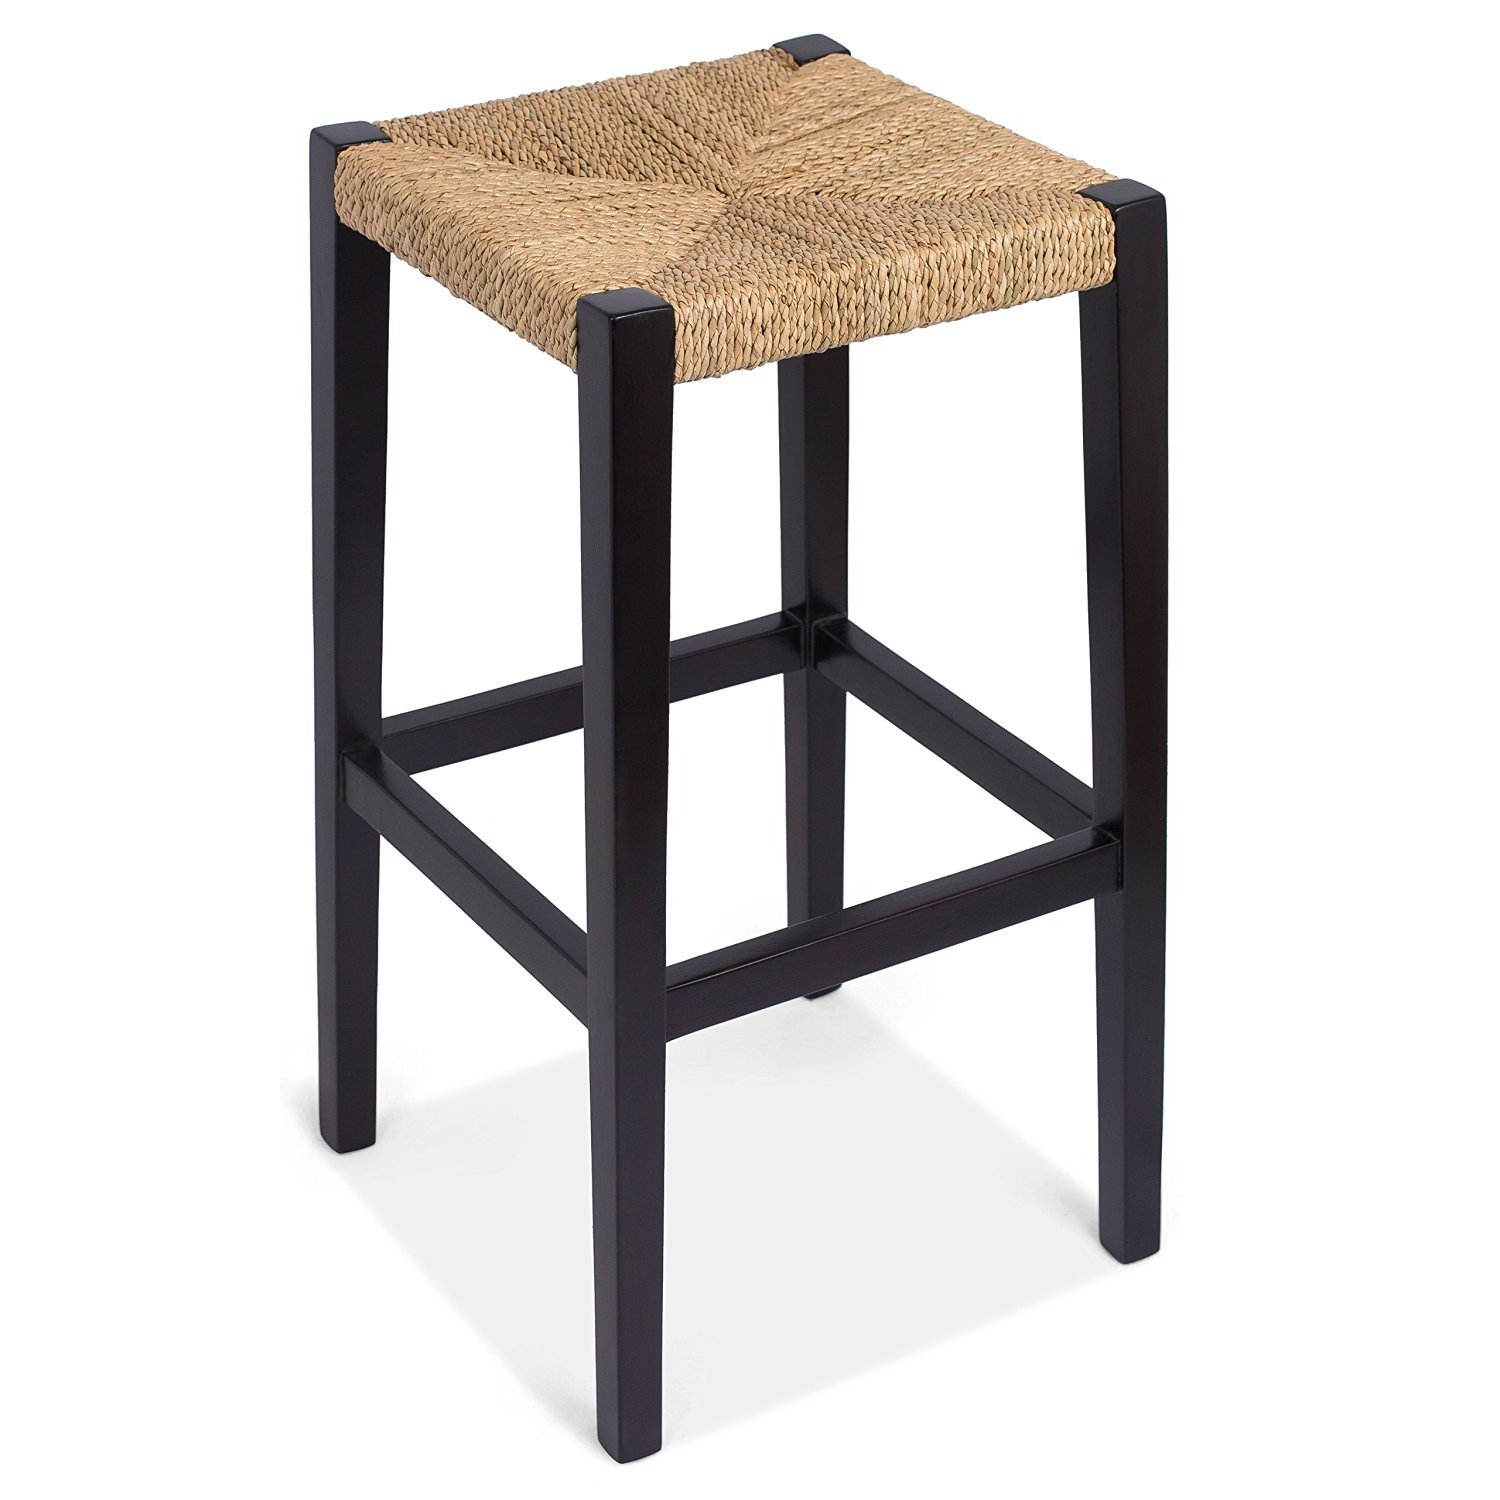 Seagrass Bar Stools | Counter Height Swivel Bar Stools | Upholstered Bar Stools